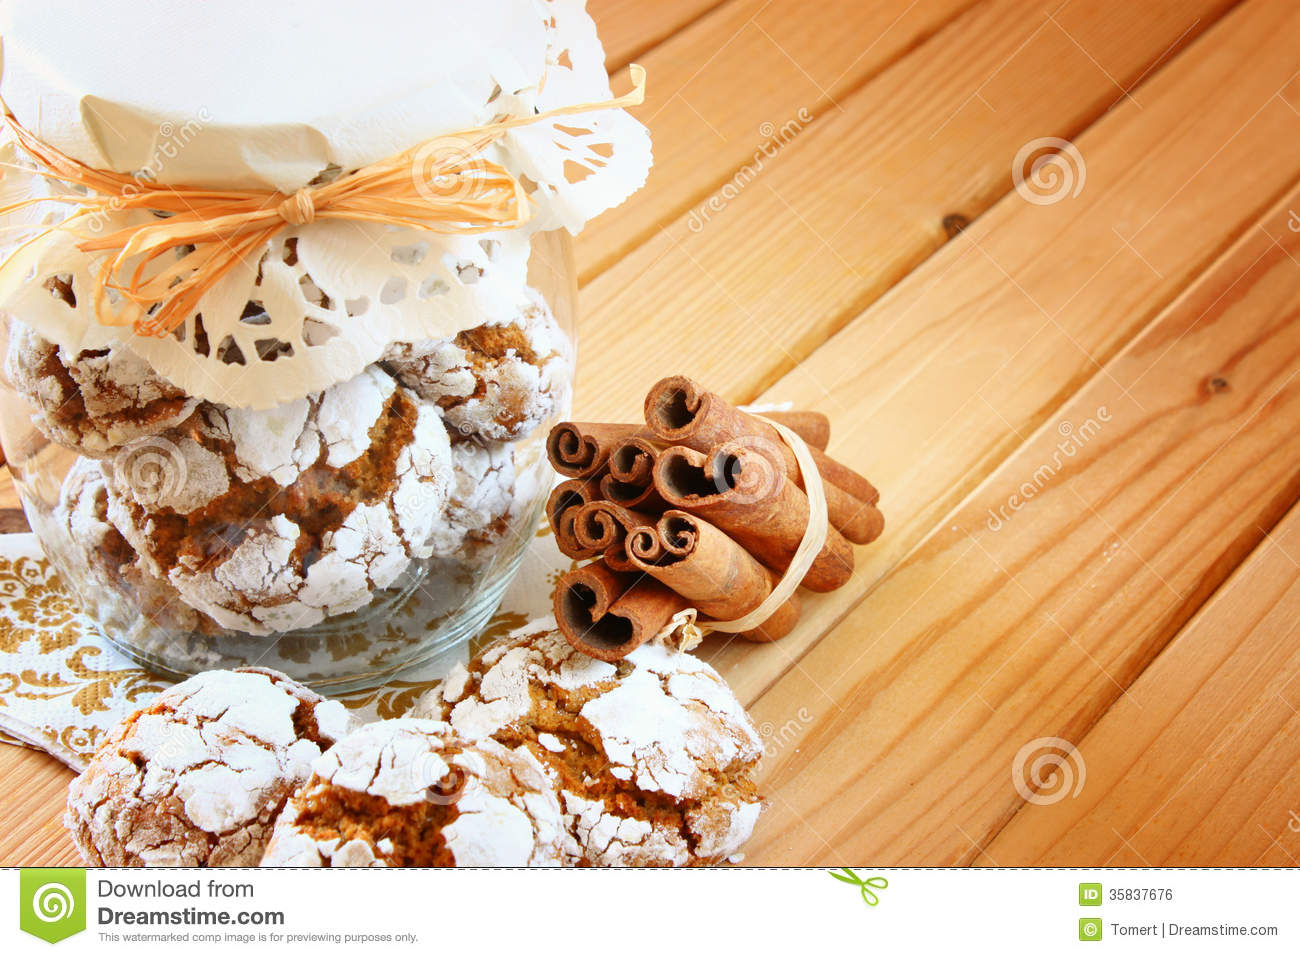 Honey Cakes Cookie Jar And Cinnamon Sticks On Wooden Table Stock